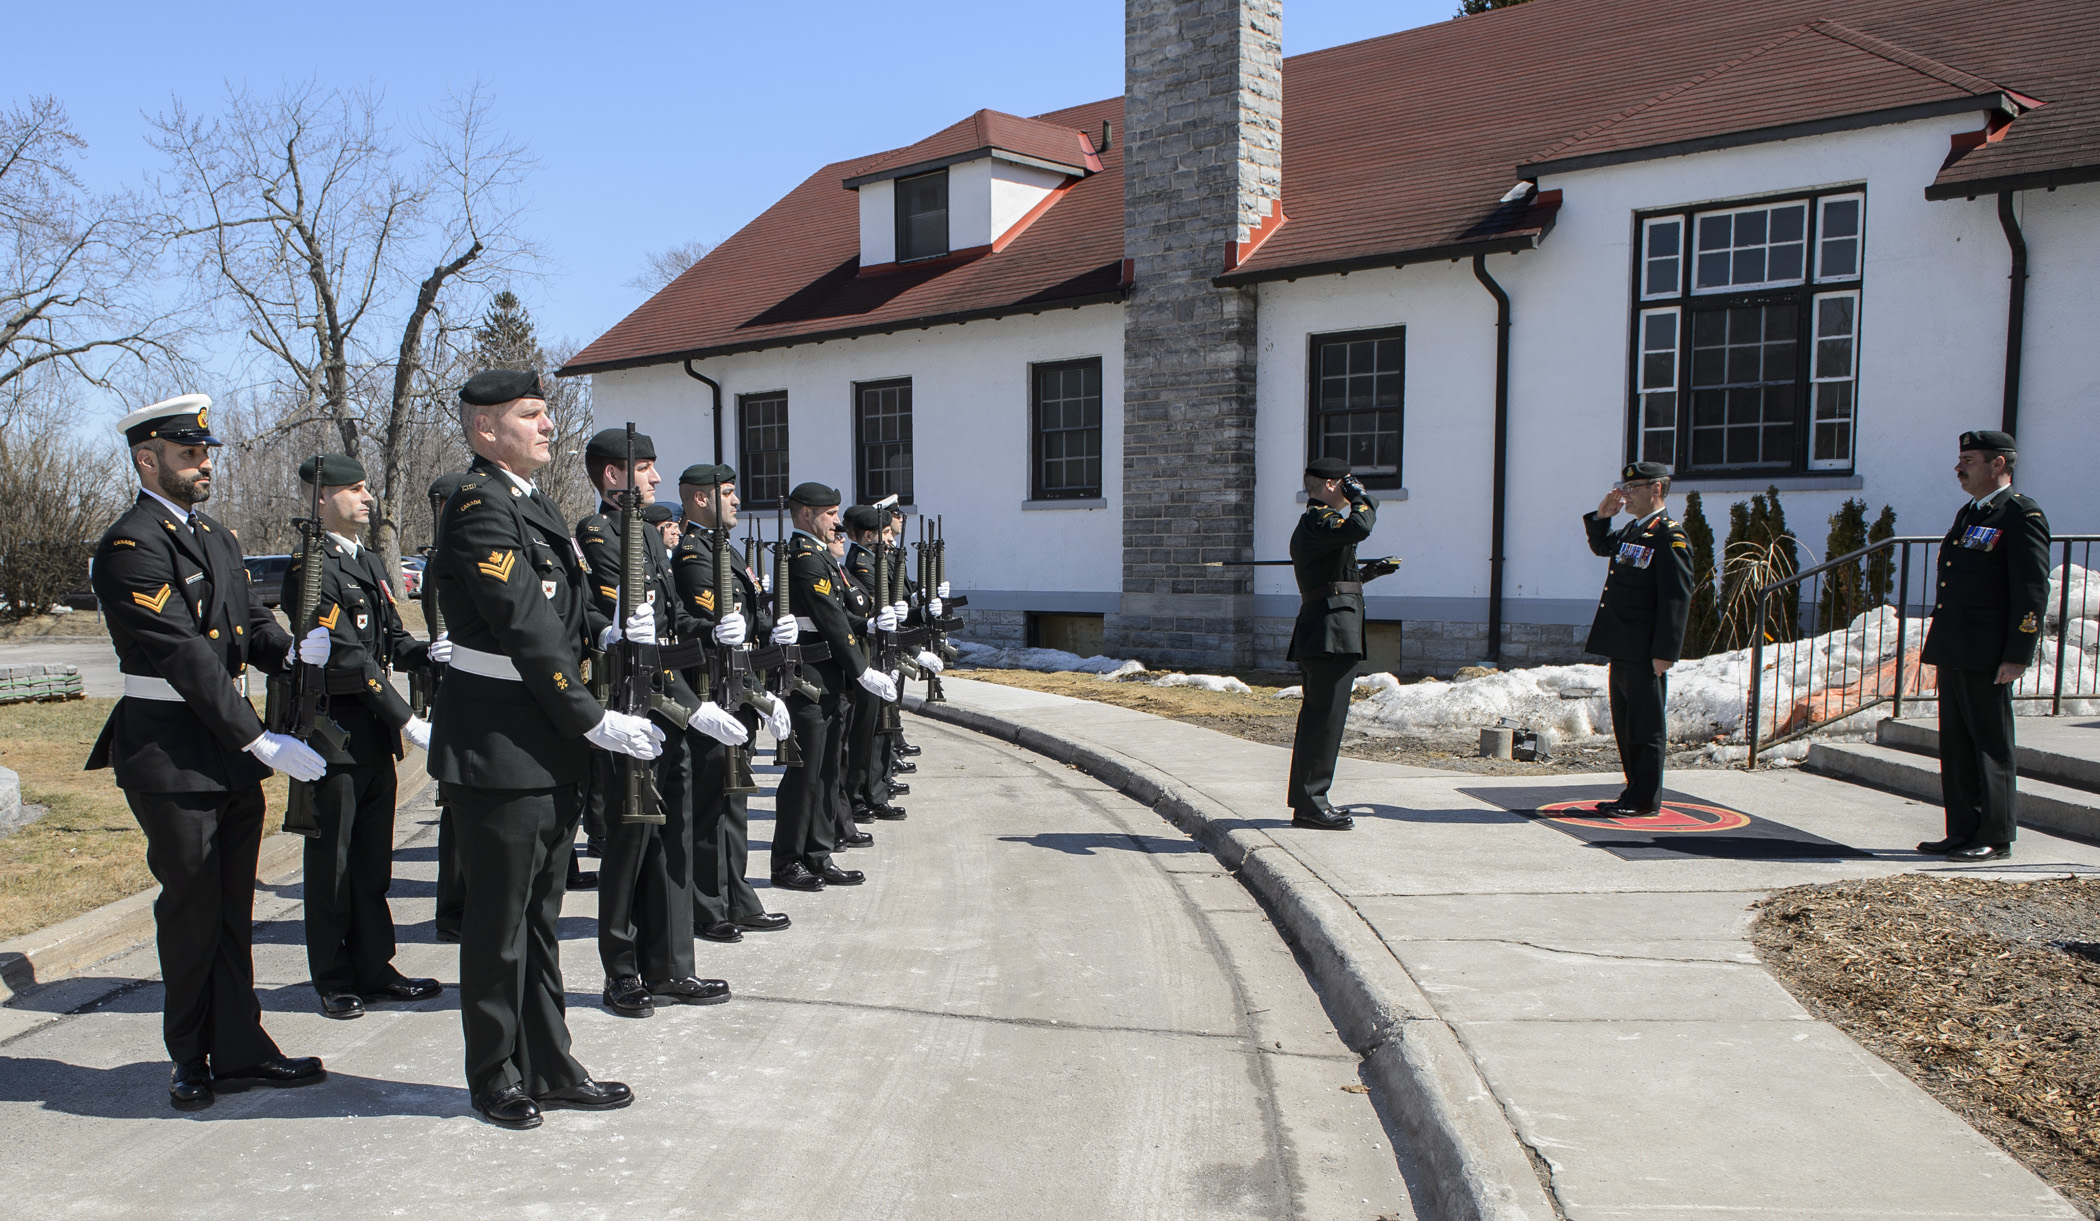 Vimy Officers' Mess, CFB Kingston. 2 April 2015 – Lieutenant-General Marquis Hainse, Commander of the Canadian Army receives a general salute from the Honour Guard. 1st Canadian Division Headquarters Transfer of Authority Ceremony.1st Canadian Division transfers from Canadian Army Command to Canadian Joint Operations Command. (Photo by: Canadian Armed Forces)